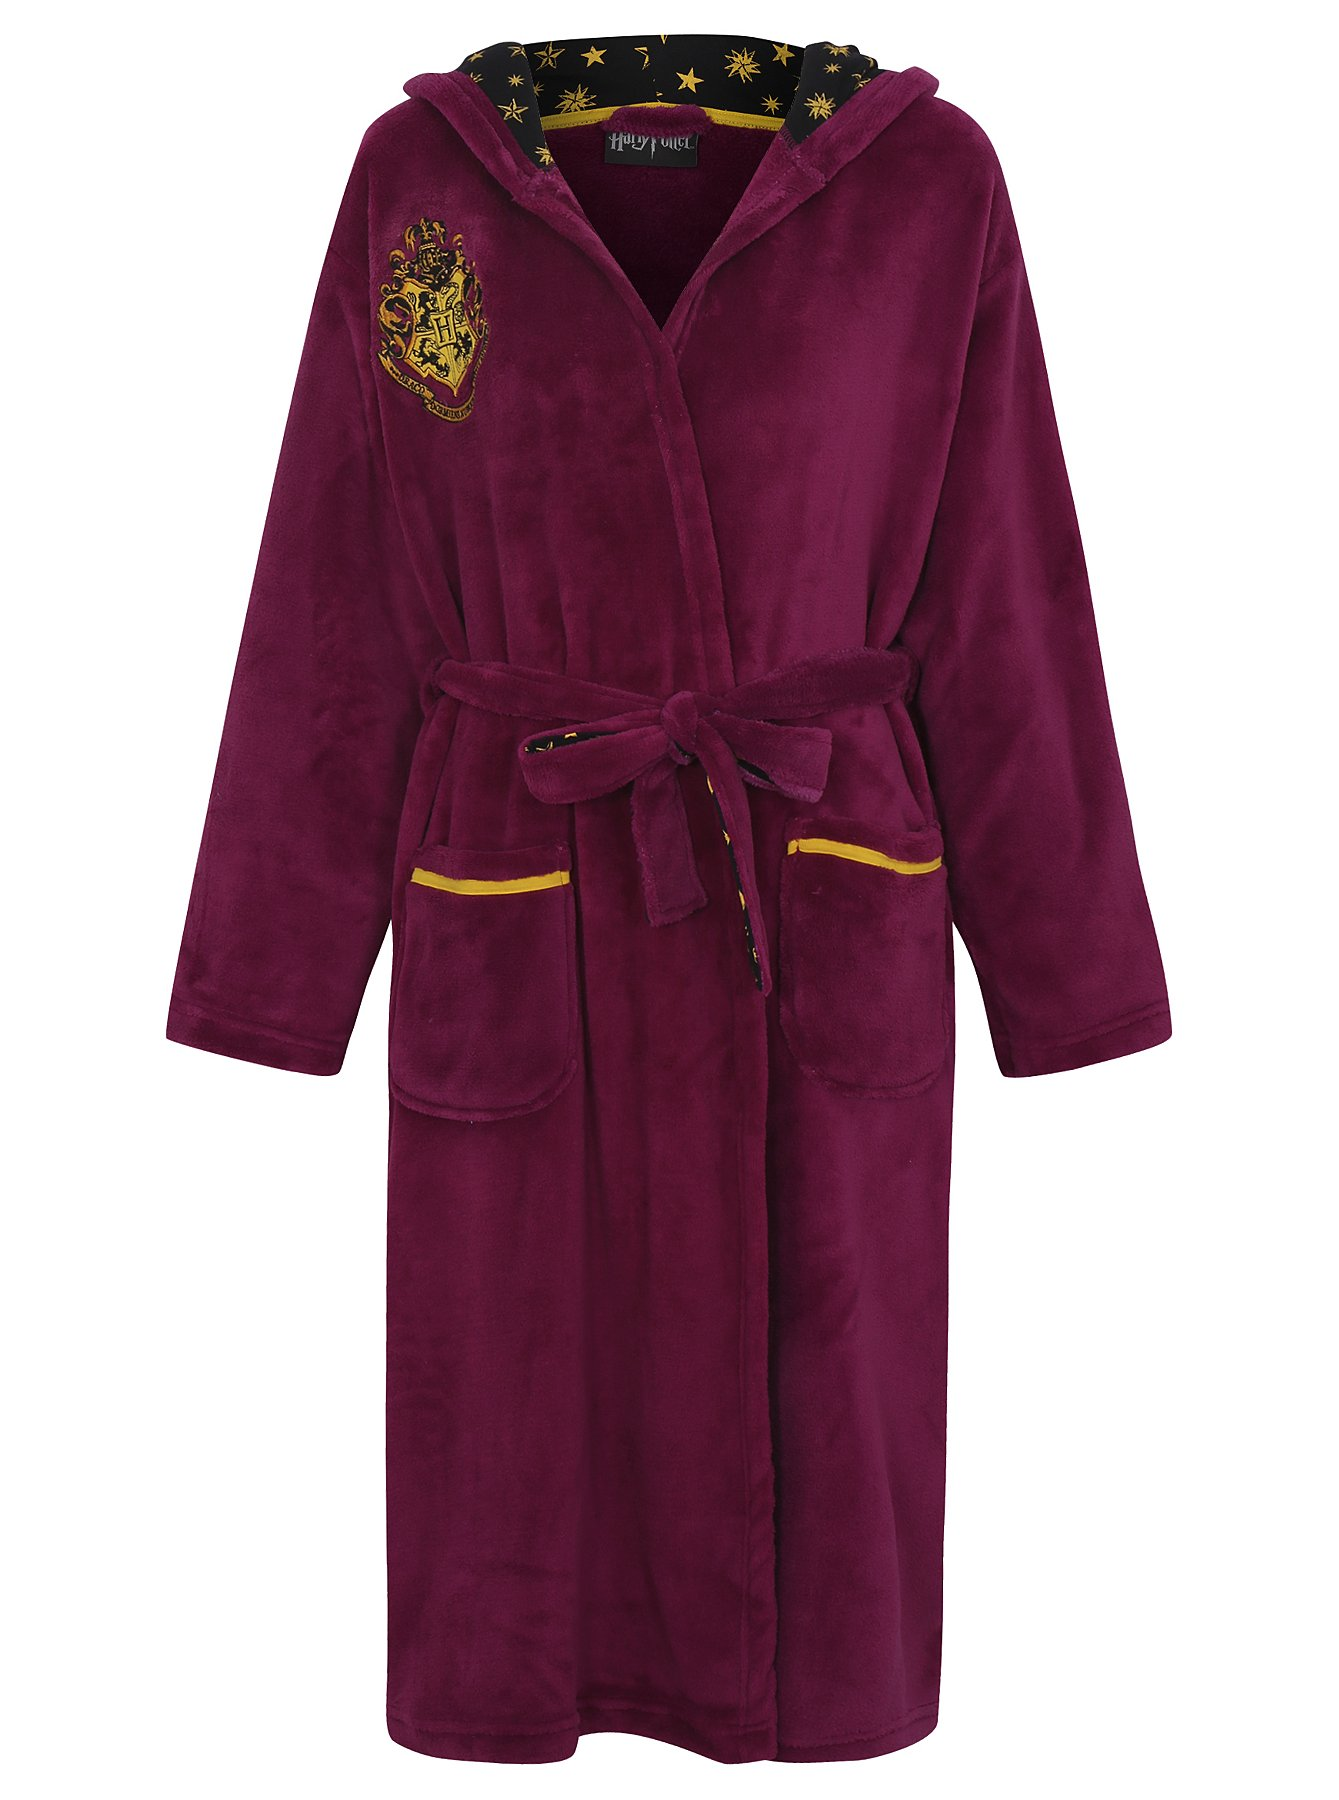 Harry Potter Dressing Gown | Women | George at ASDA